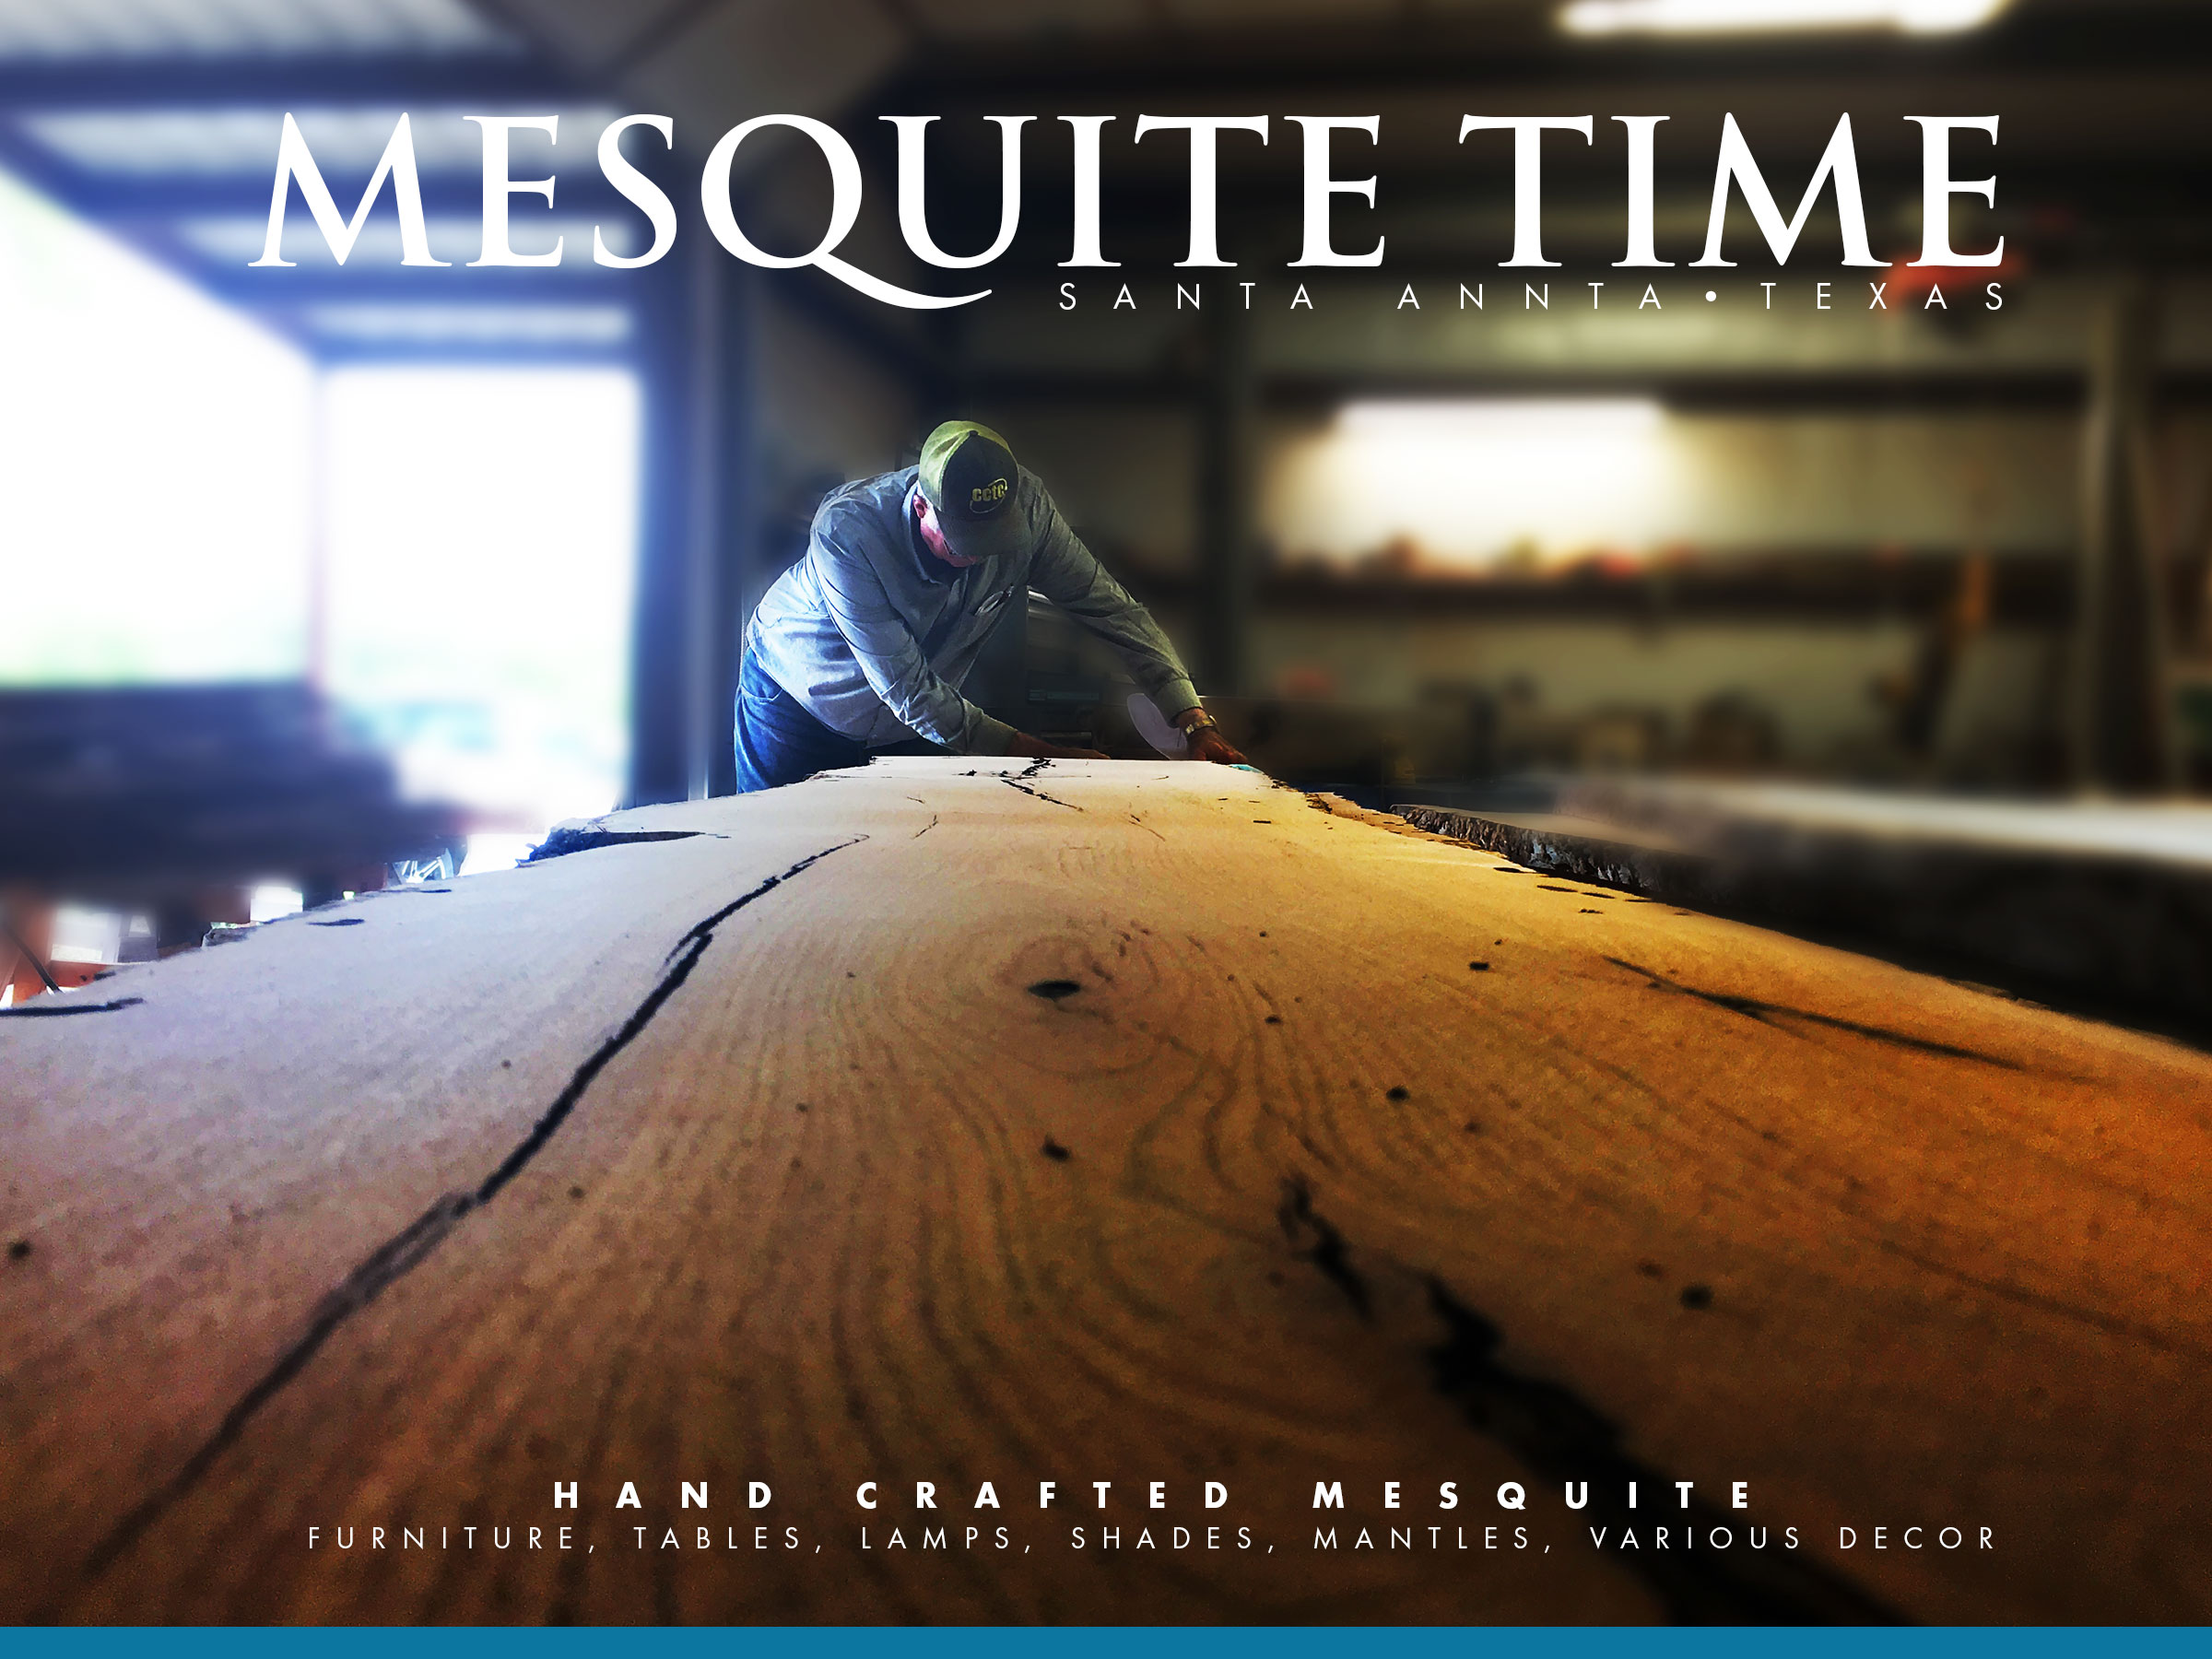 Mesquite Time